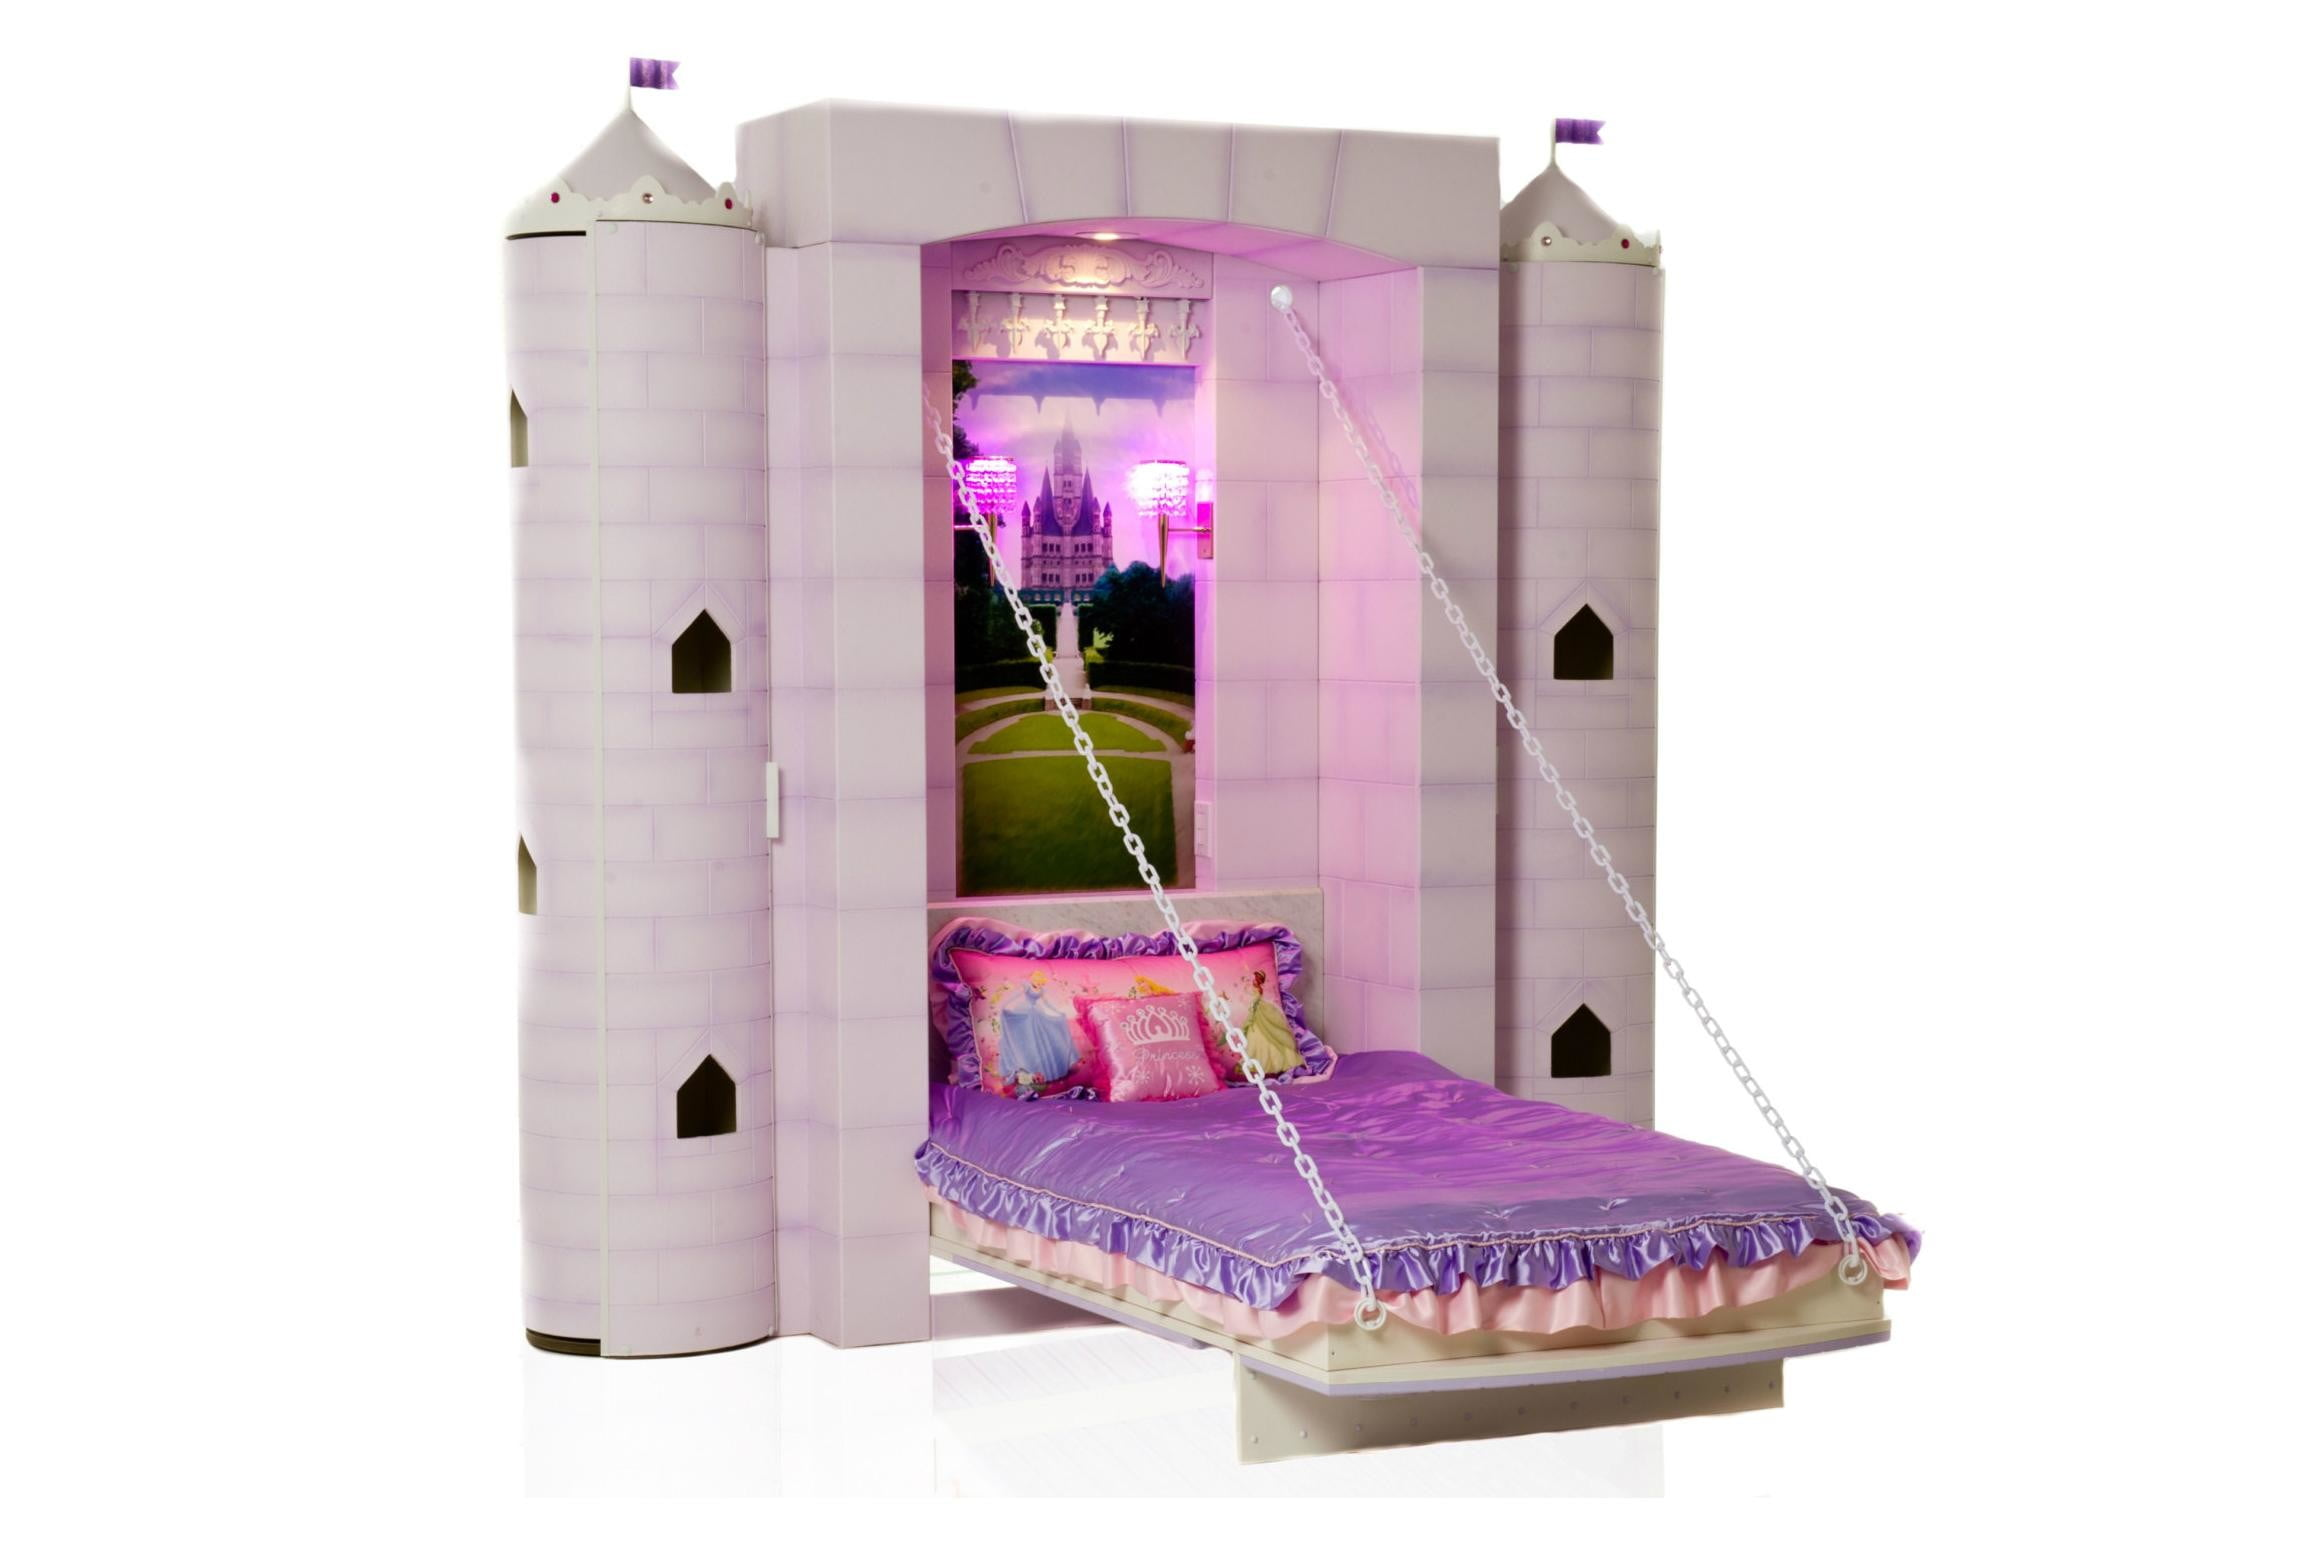 fable bedworks amazing kids beds cost more than a car etsy princess bed